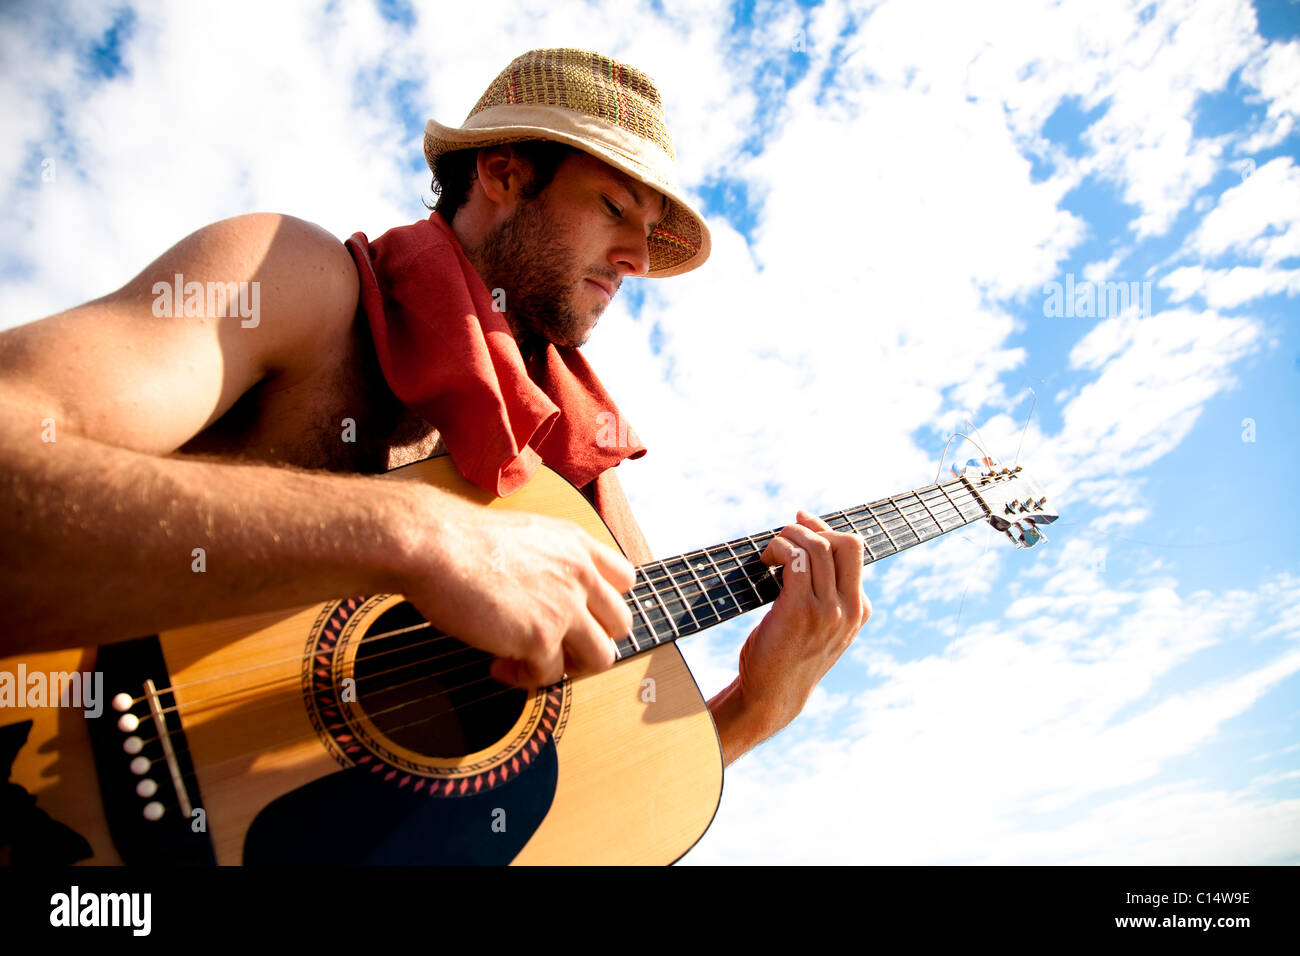 A young man plays his guitar while on a fishing boat off the coast of Malakati, Fiji. - Stock Image